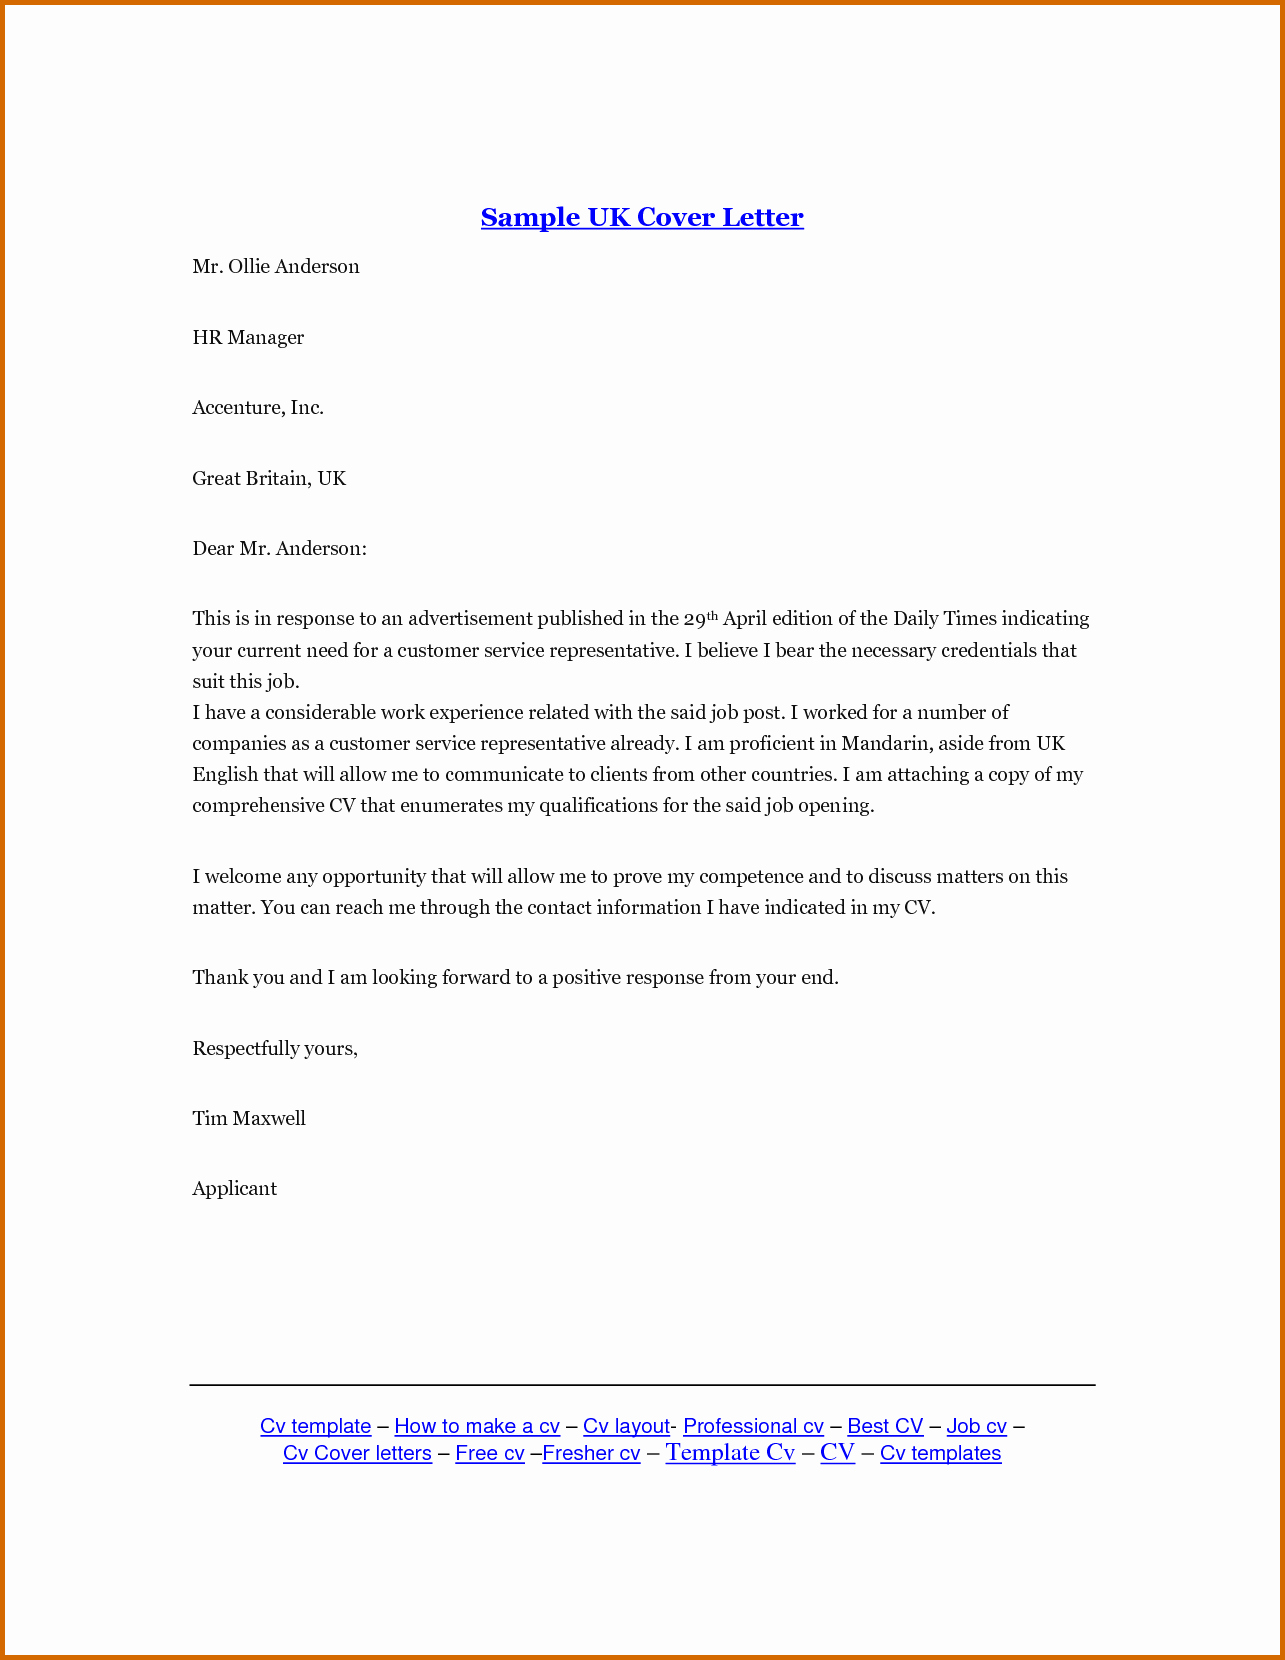 10 how to write a cover letter uk